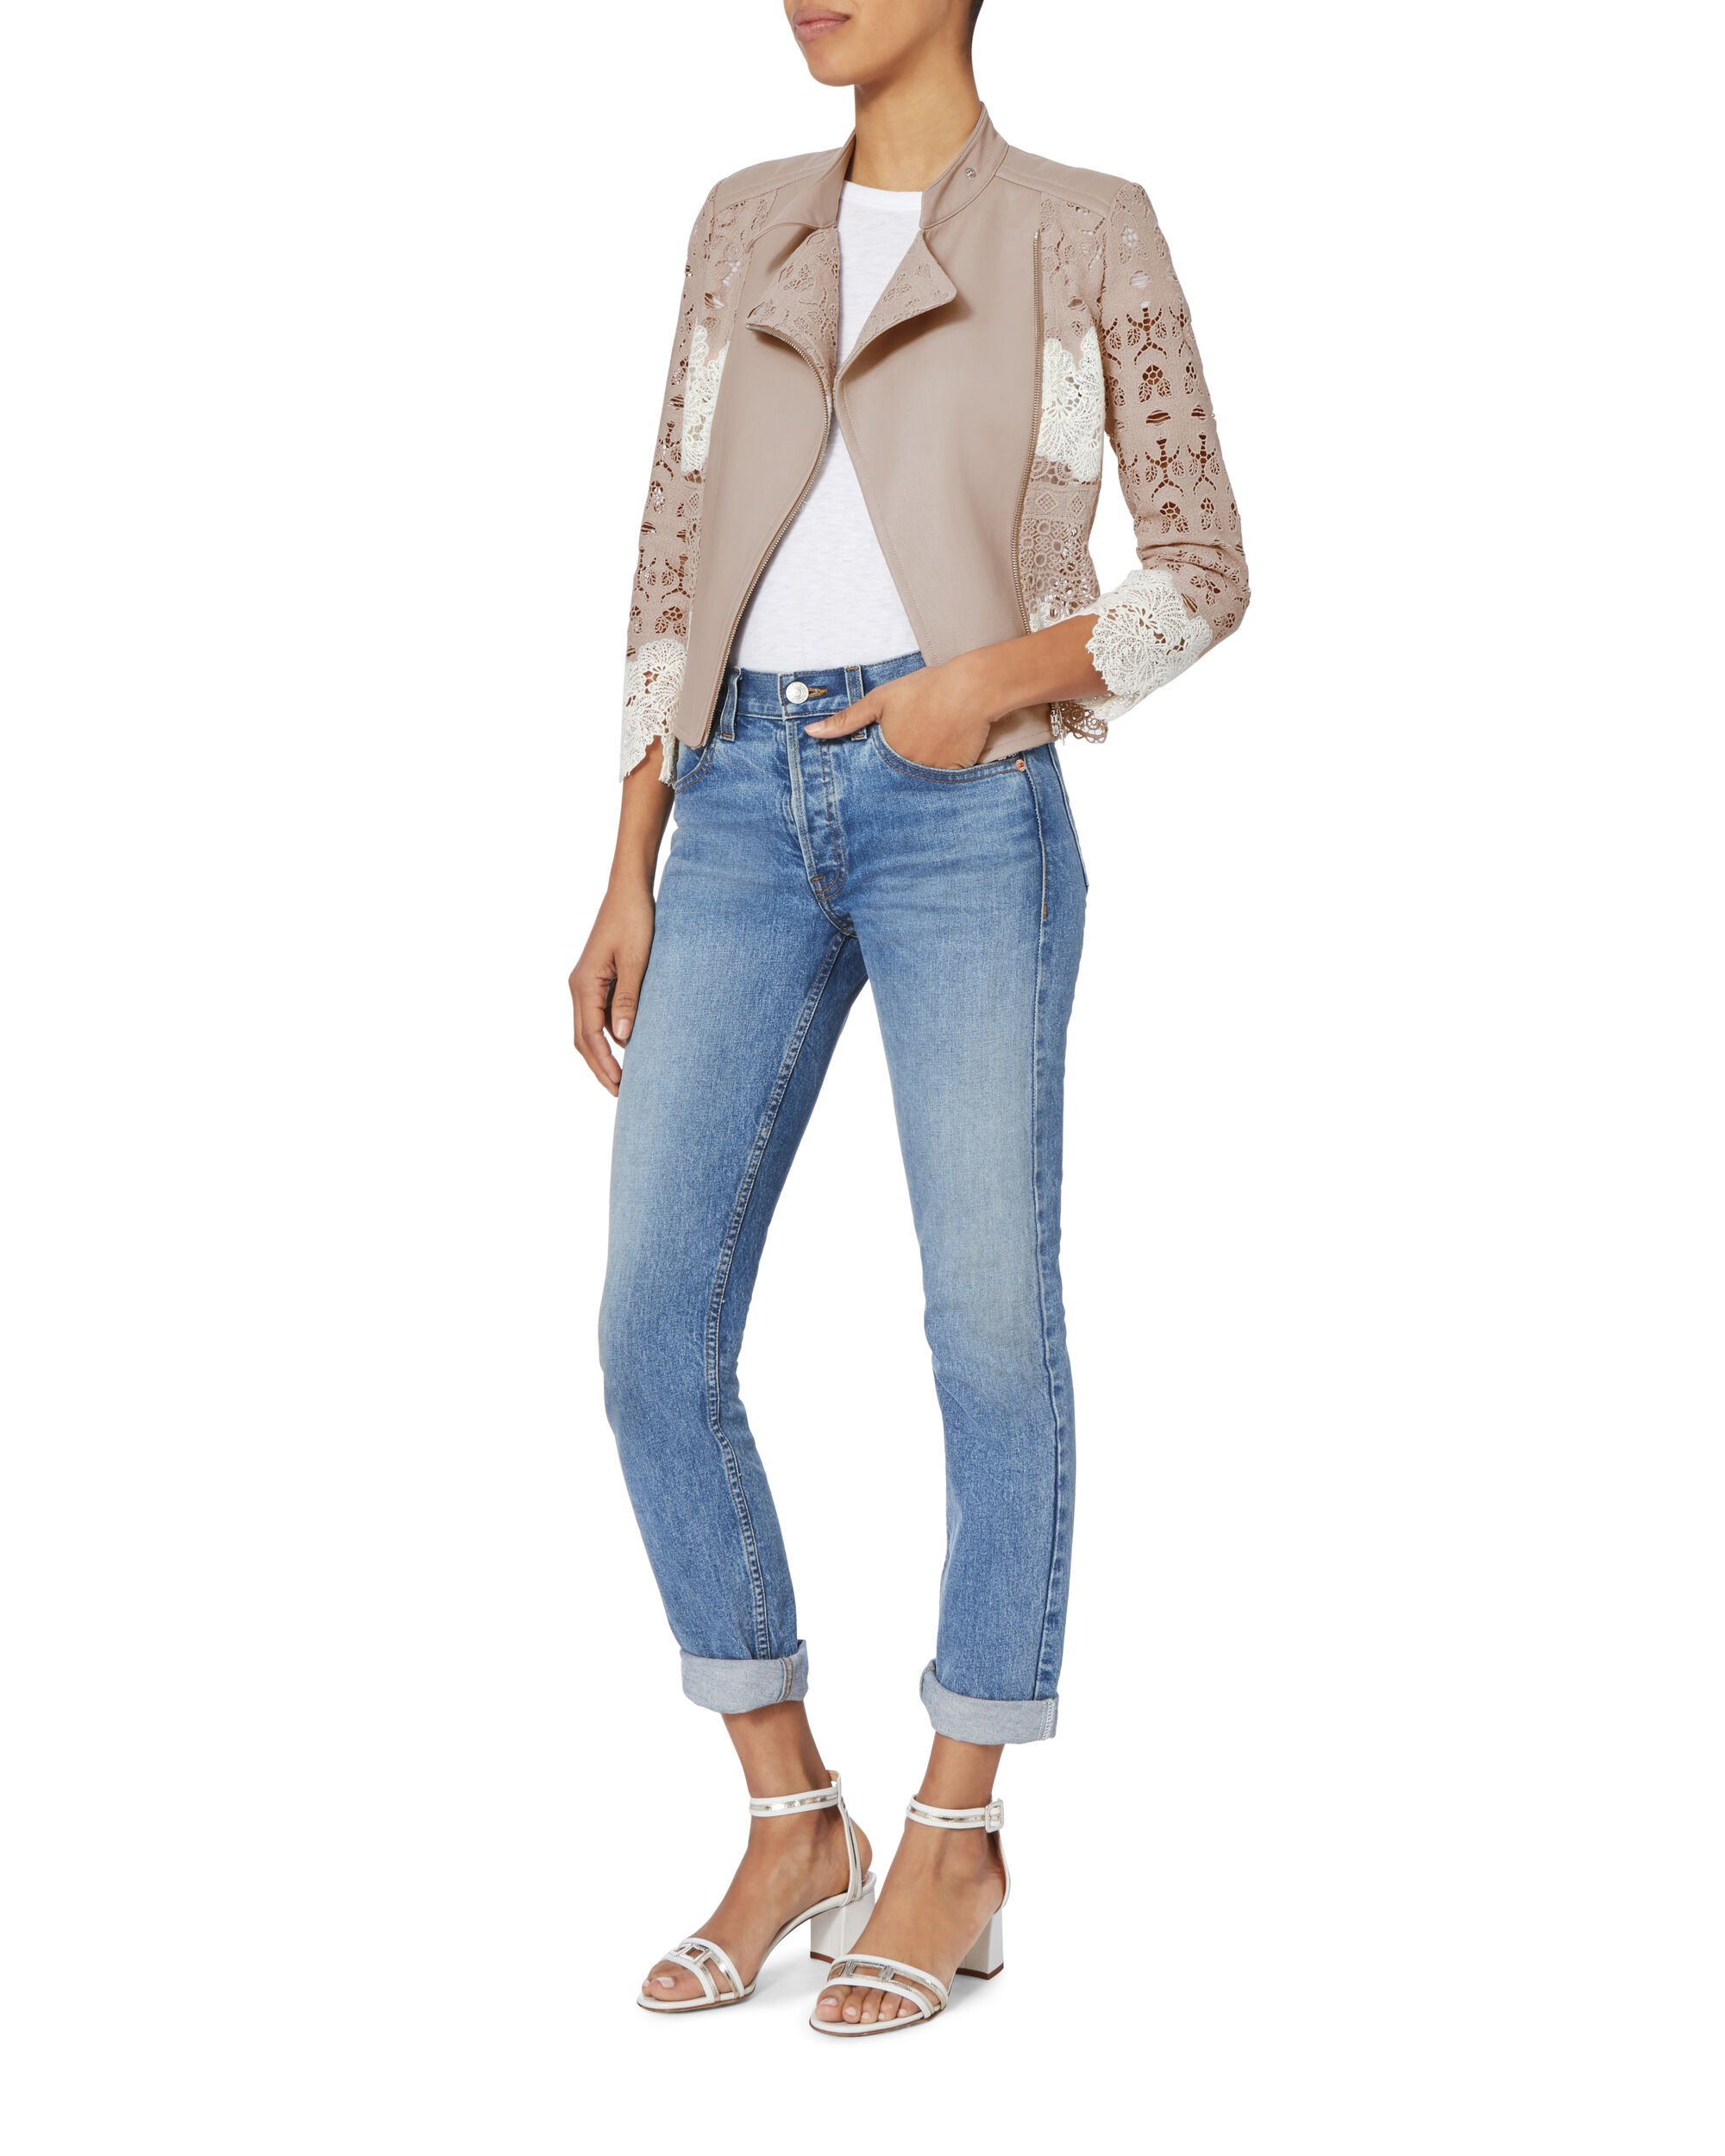 Lace Blush Moto Jacket, BLUSH/NUDE, hi-res